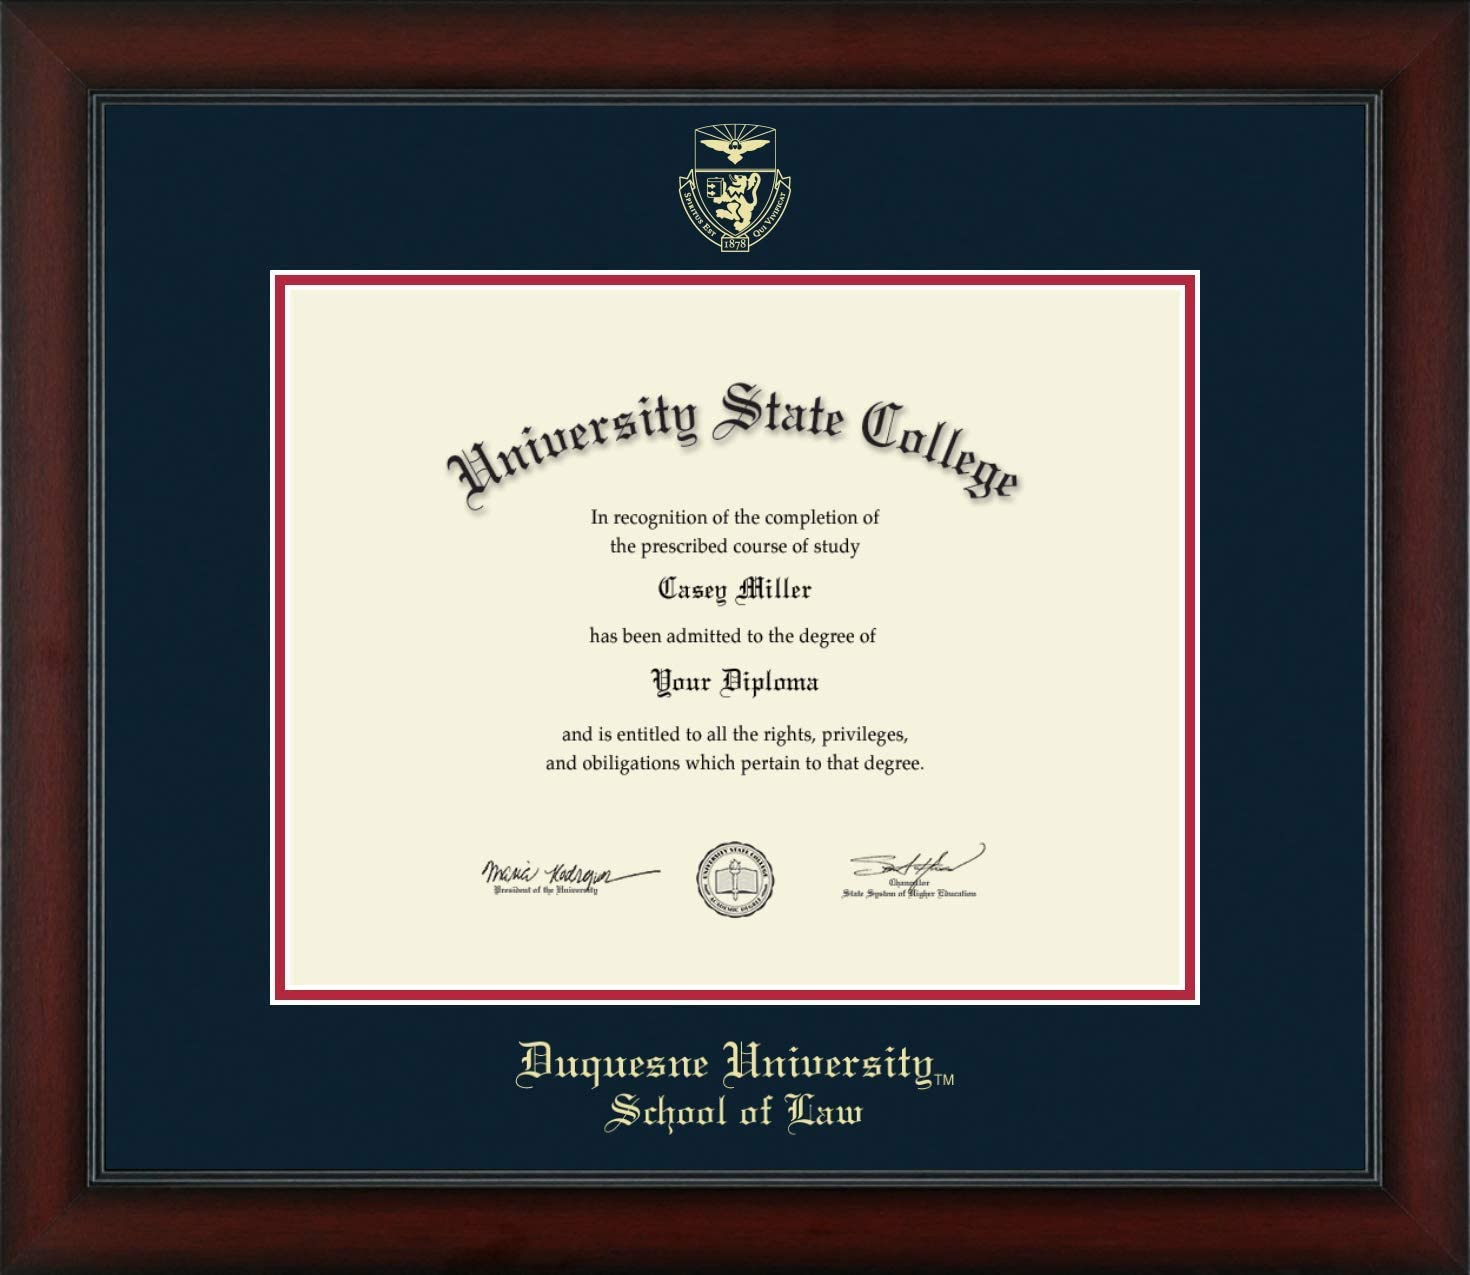 Duquesne University School of Law San Diego Mall - Ranking TOP9 Post-S Officially Licensed